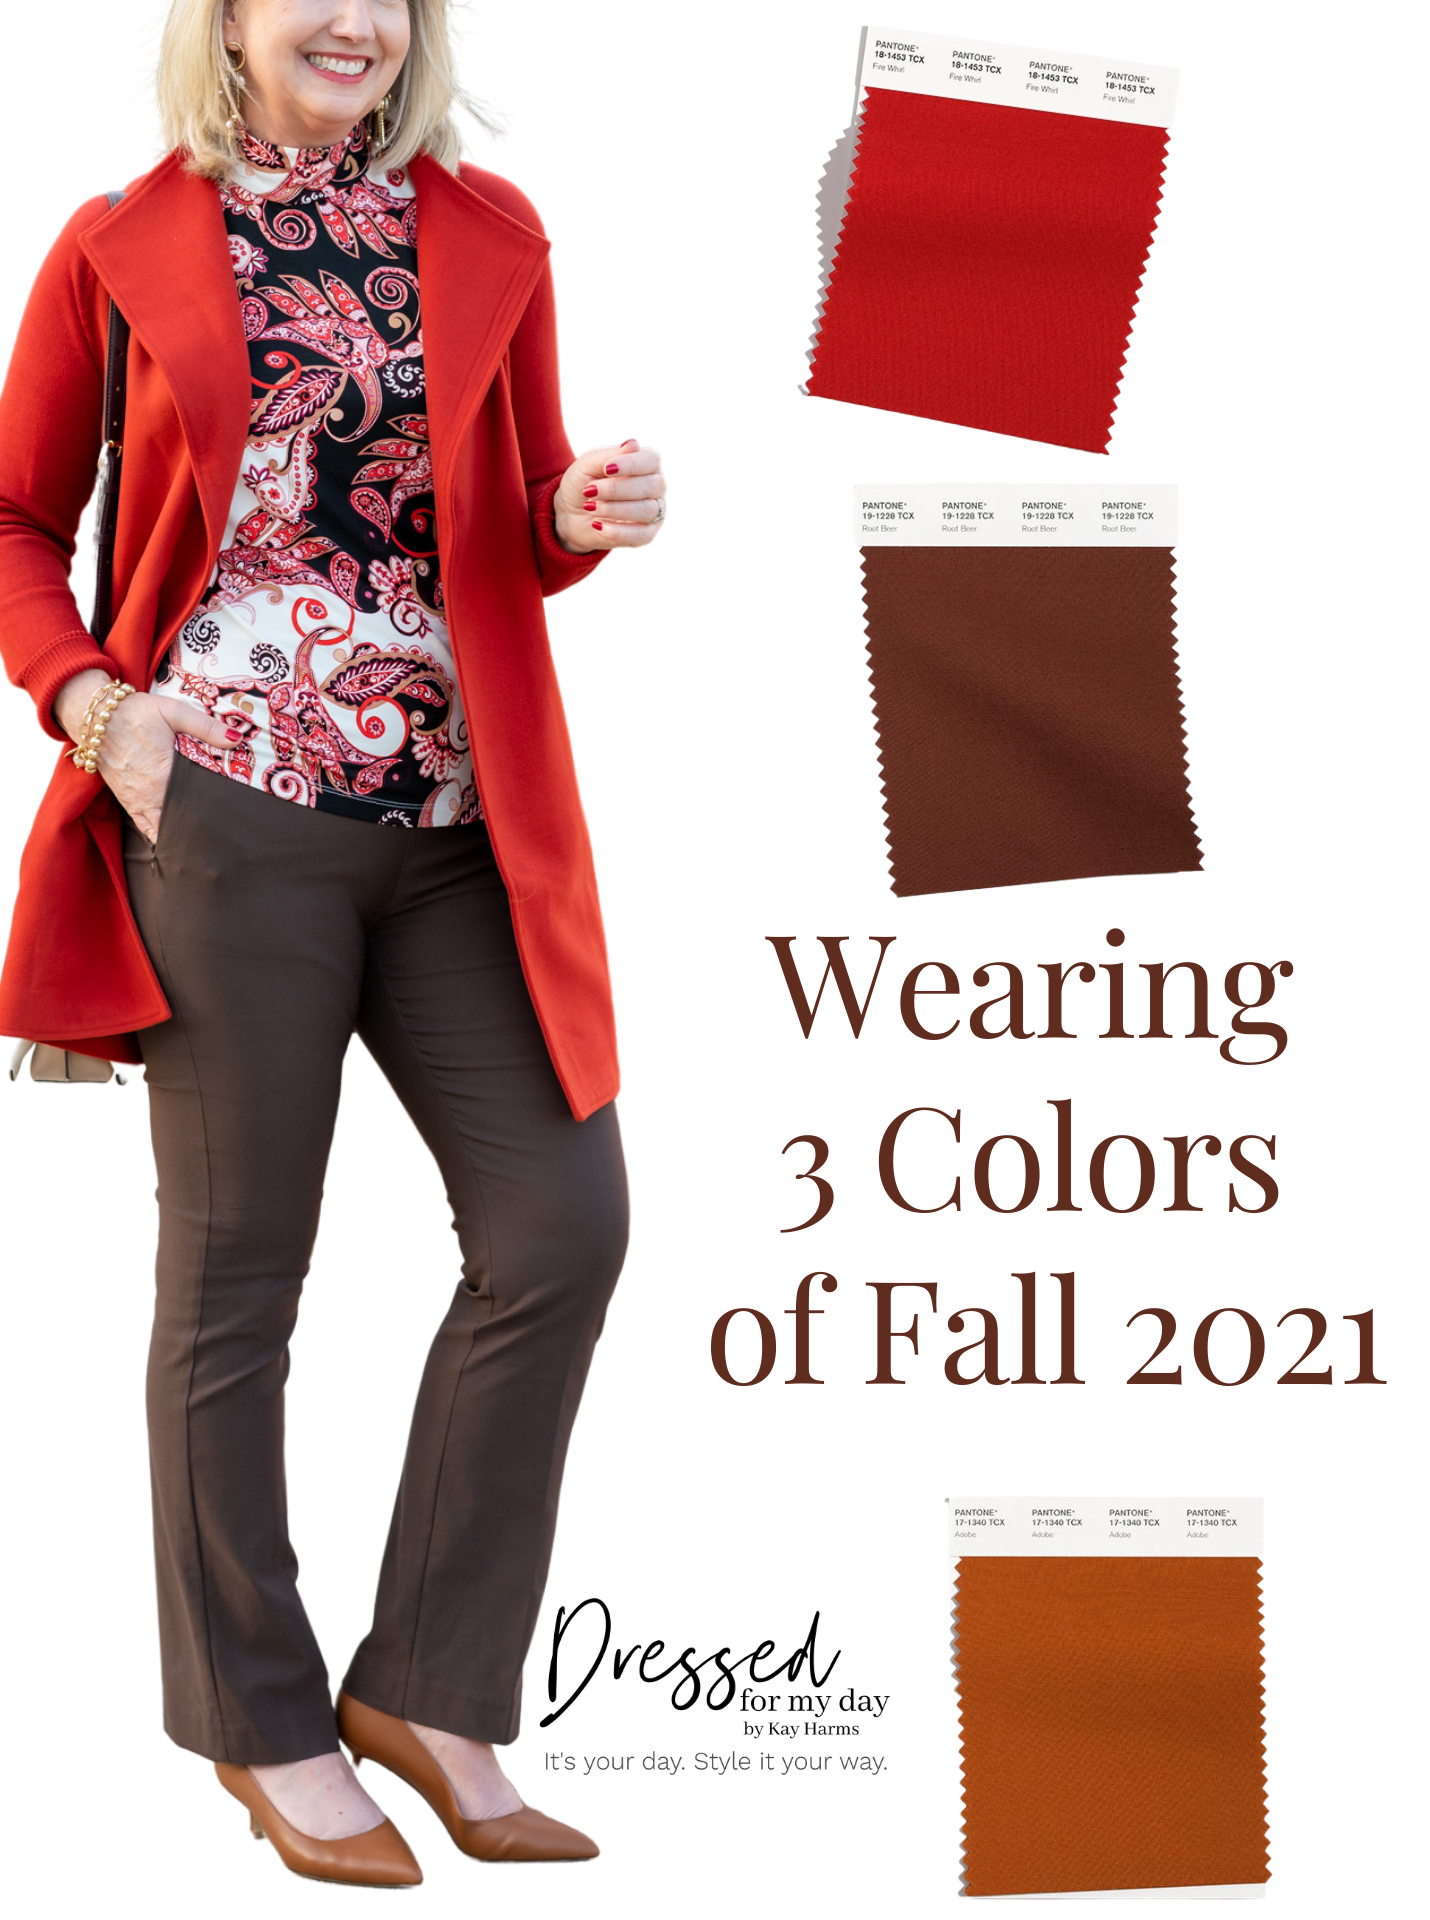 Wearing 3 Colors of Fall 2021